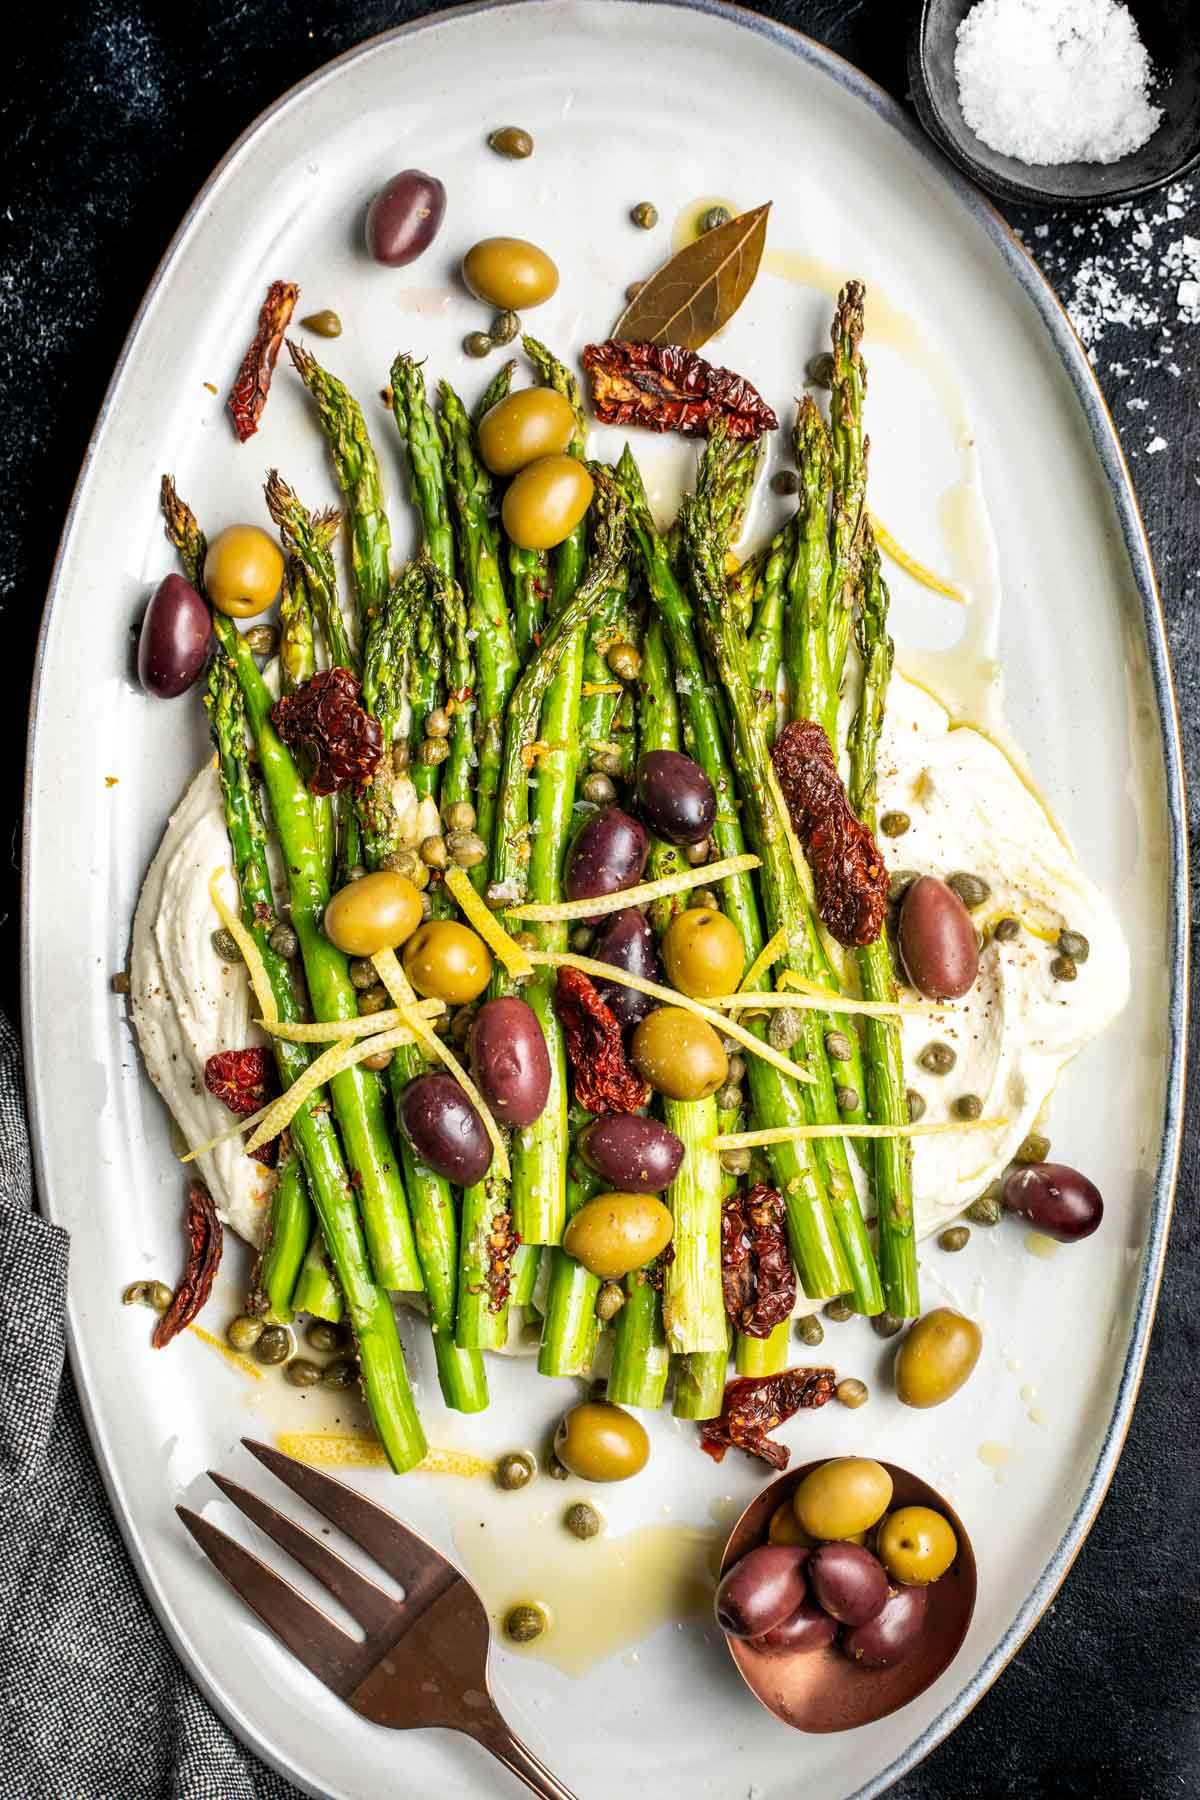 Mediterranean Asparagus - charred lemon garlic asparagus on top of whipped feta and topped with olives, capers, sun-dried tomatoes, and lemon zest.